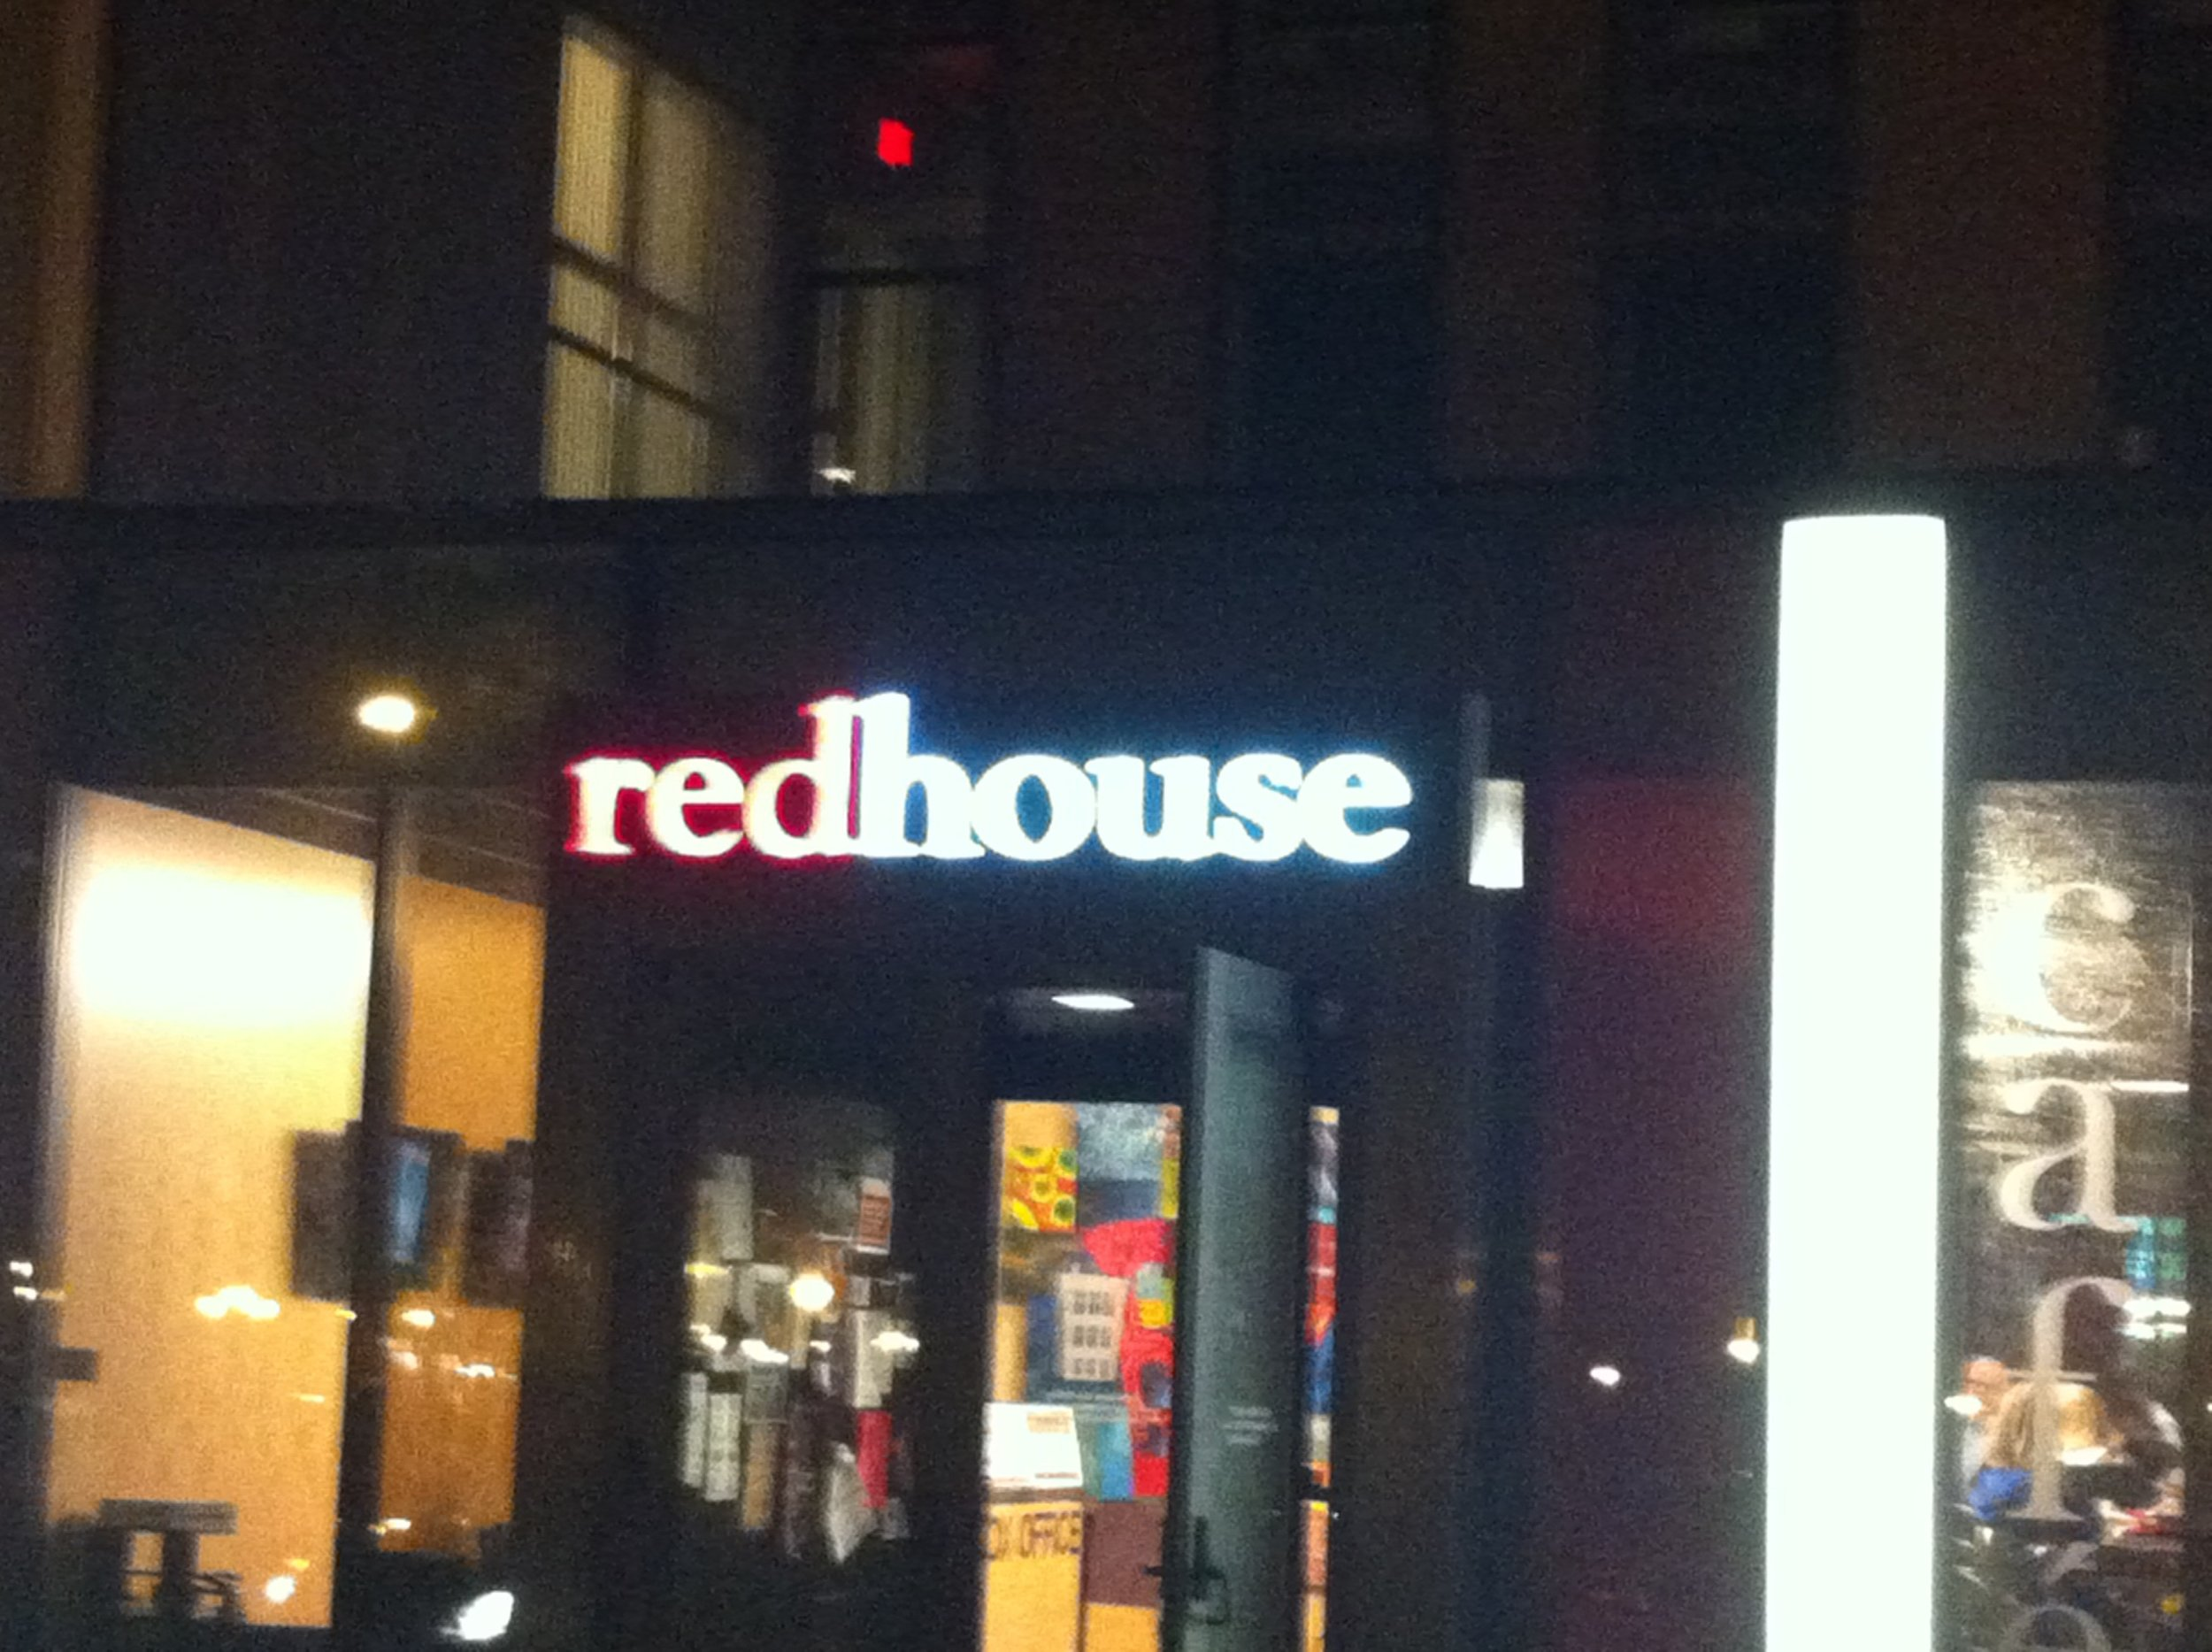 The Redhouse Arts Center